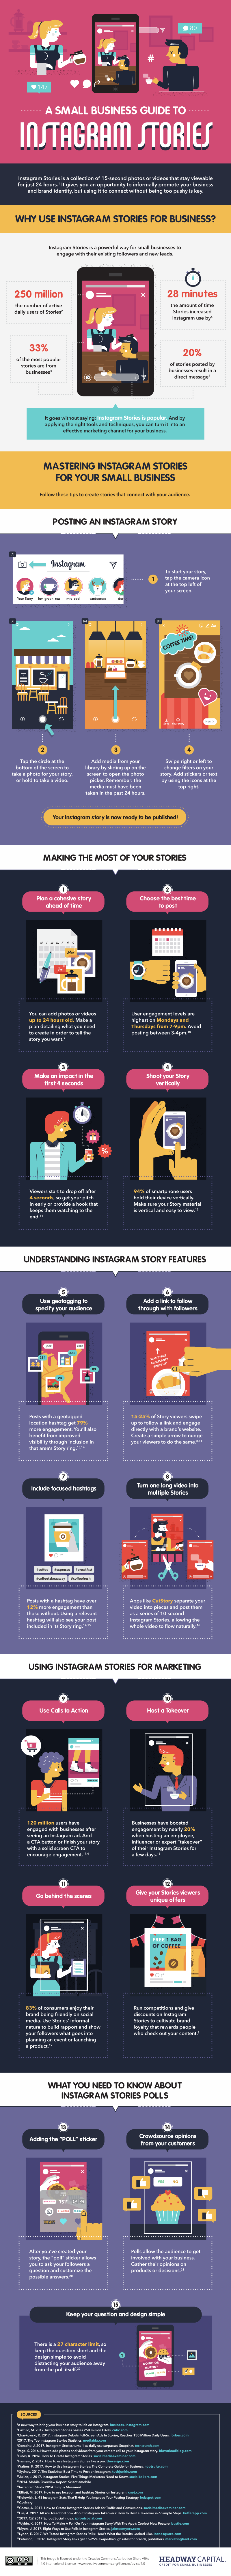 A-small-business-guide-to-instagram-stories